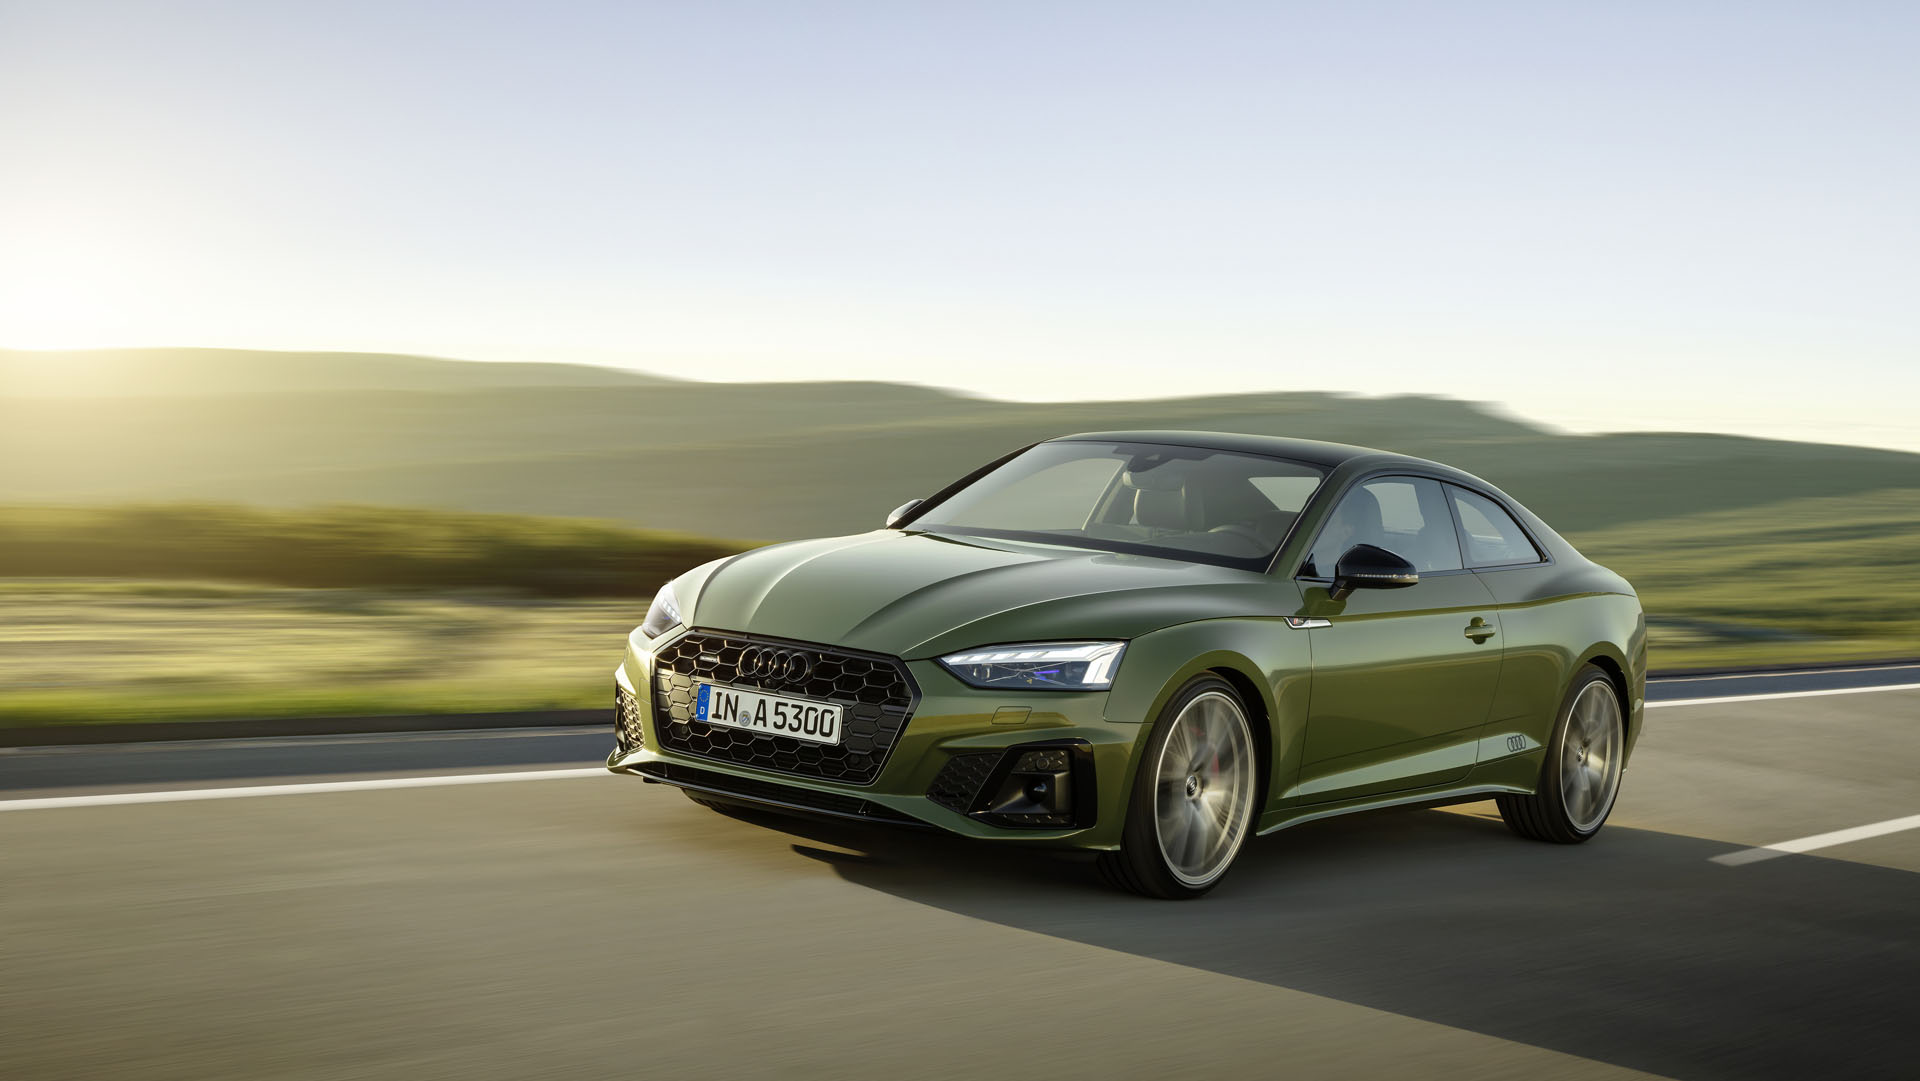 Refreshed Audi A5 arrives with hybrid power and more tech